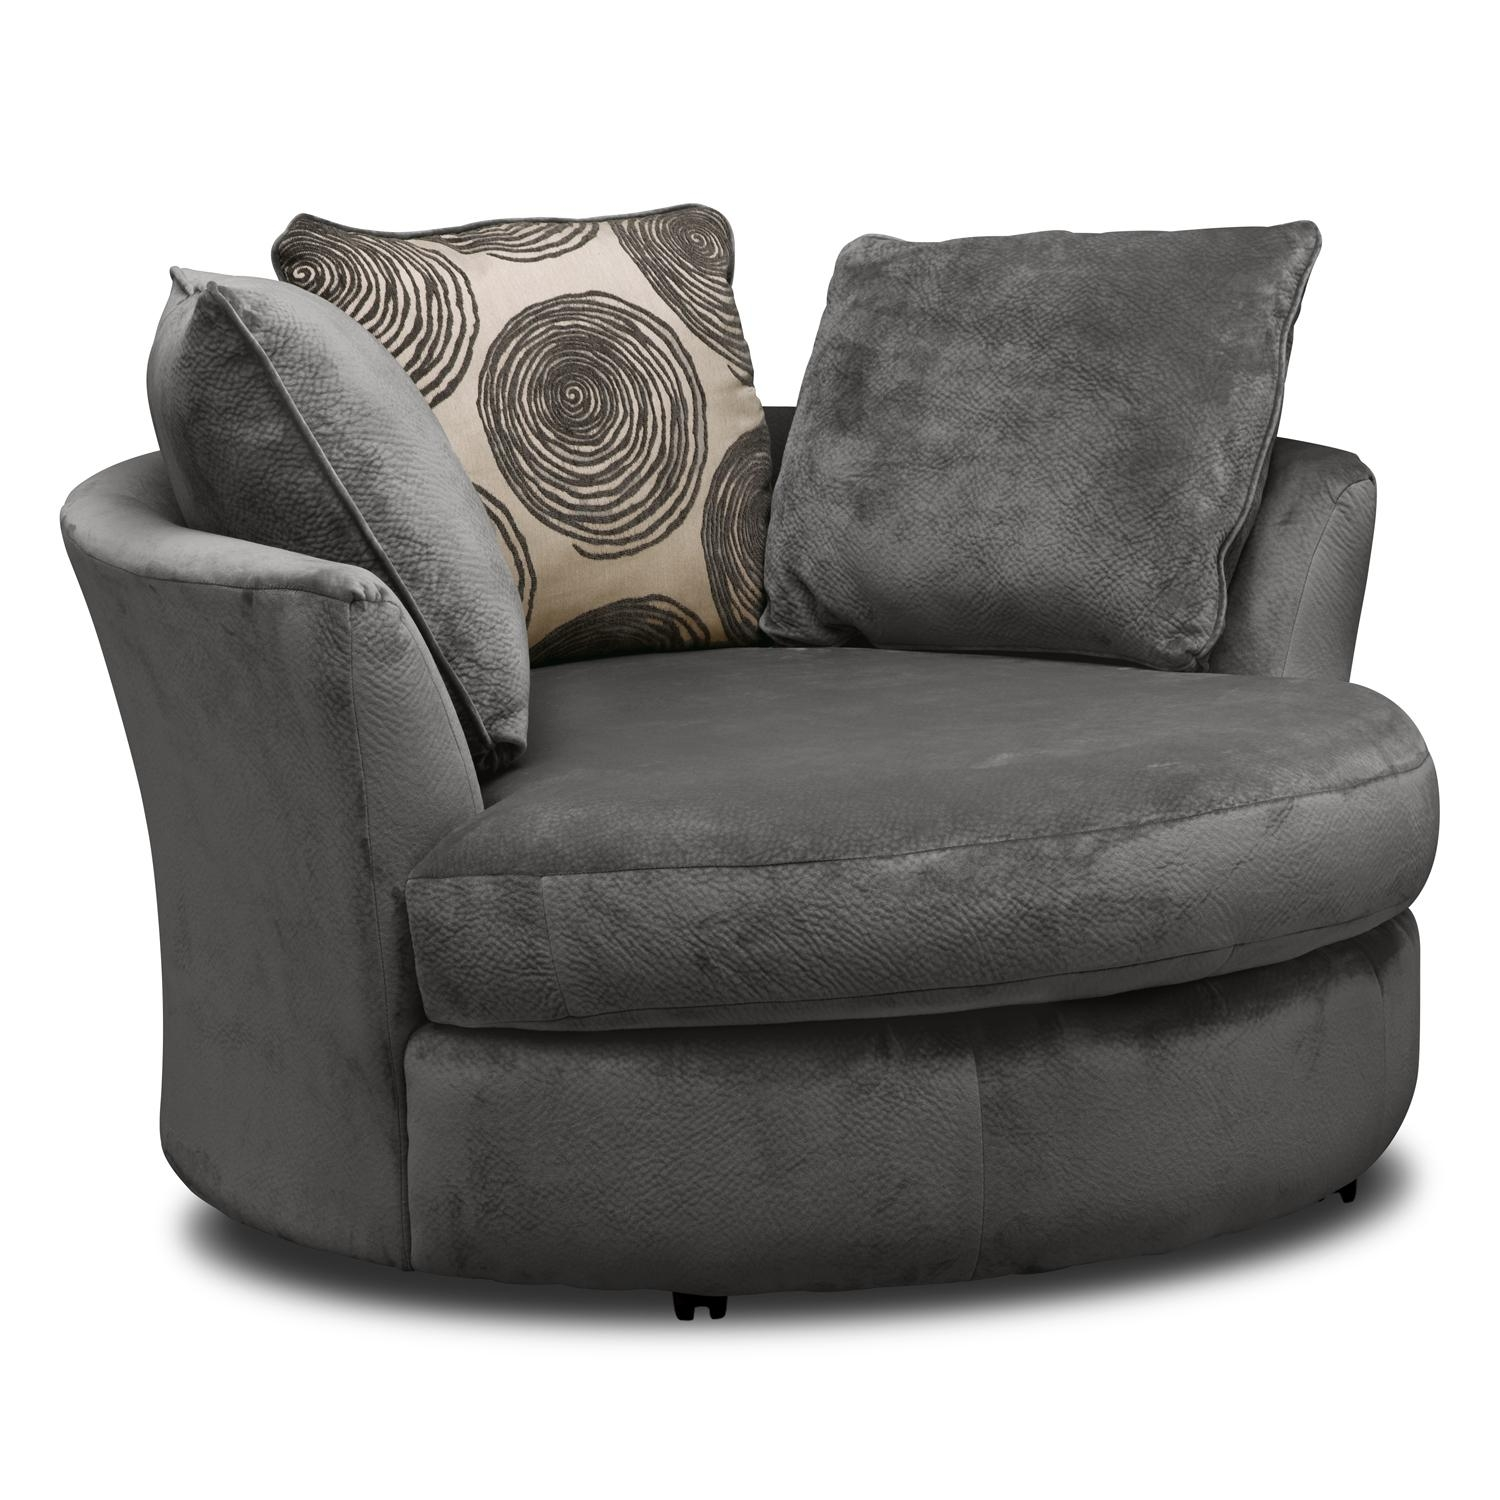 Round Oversized Chair 20 Ideas Of Large Sofa Chairs Sofa Ideas